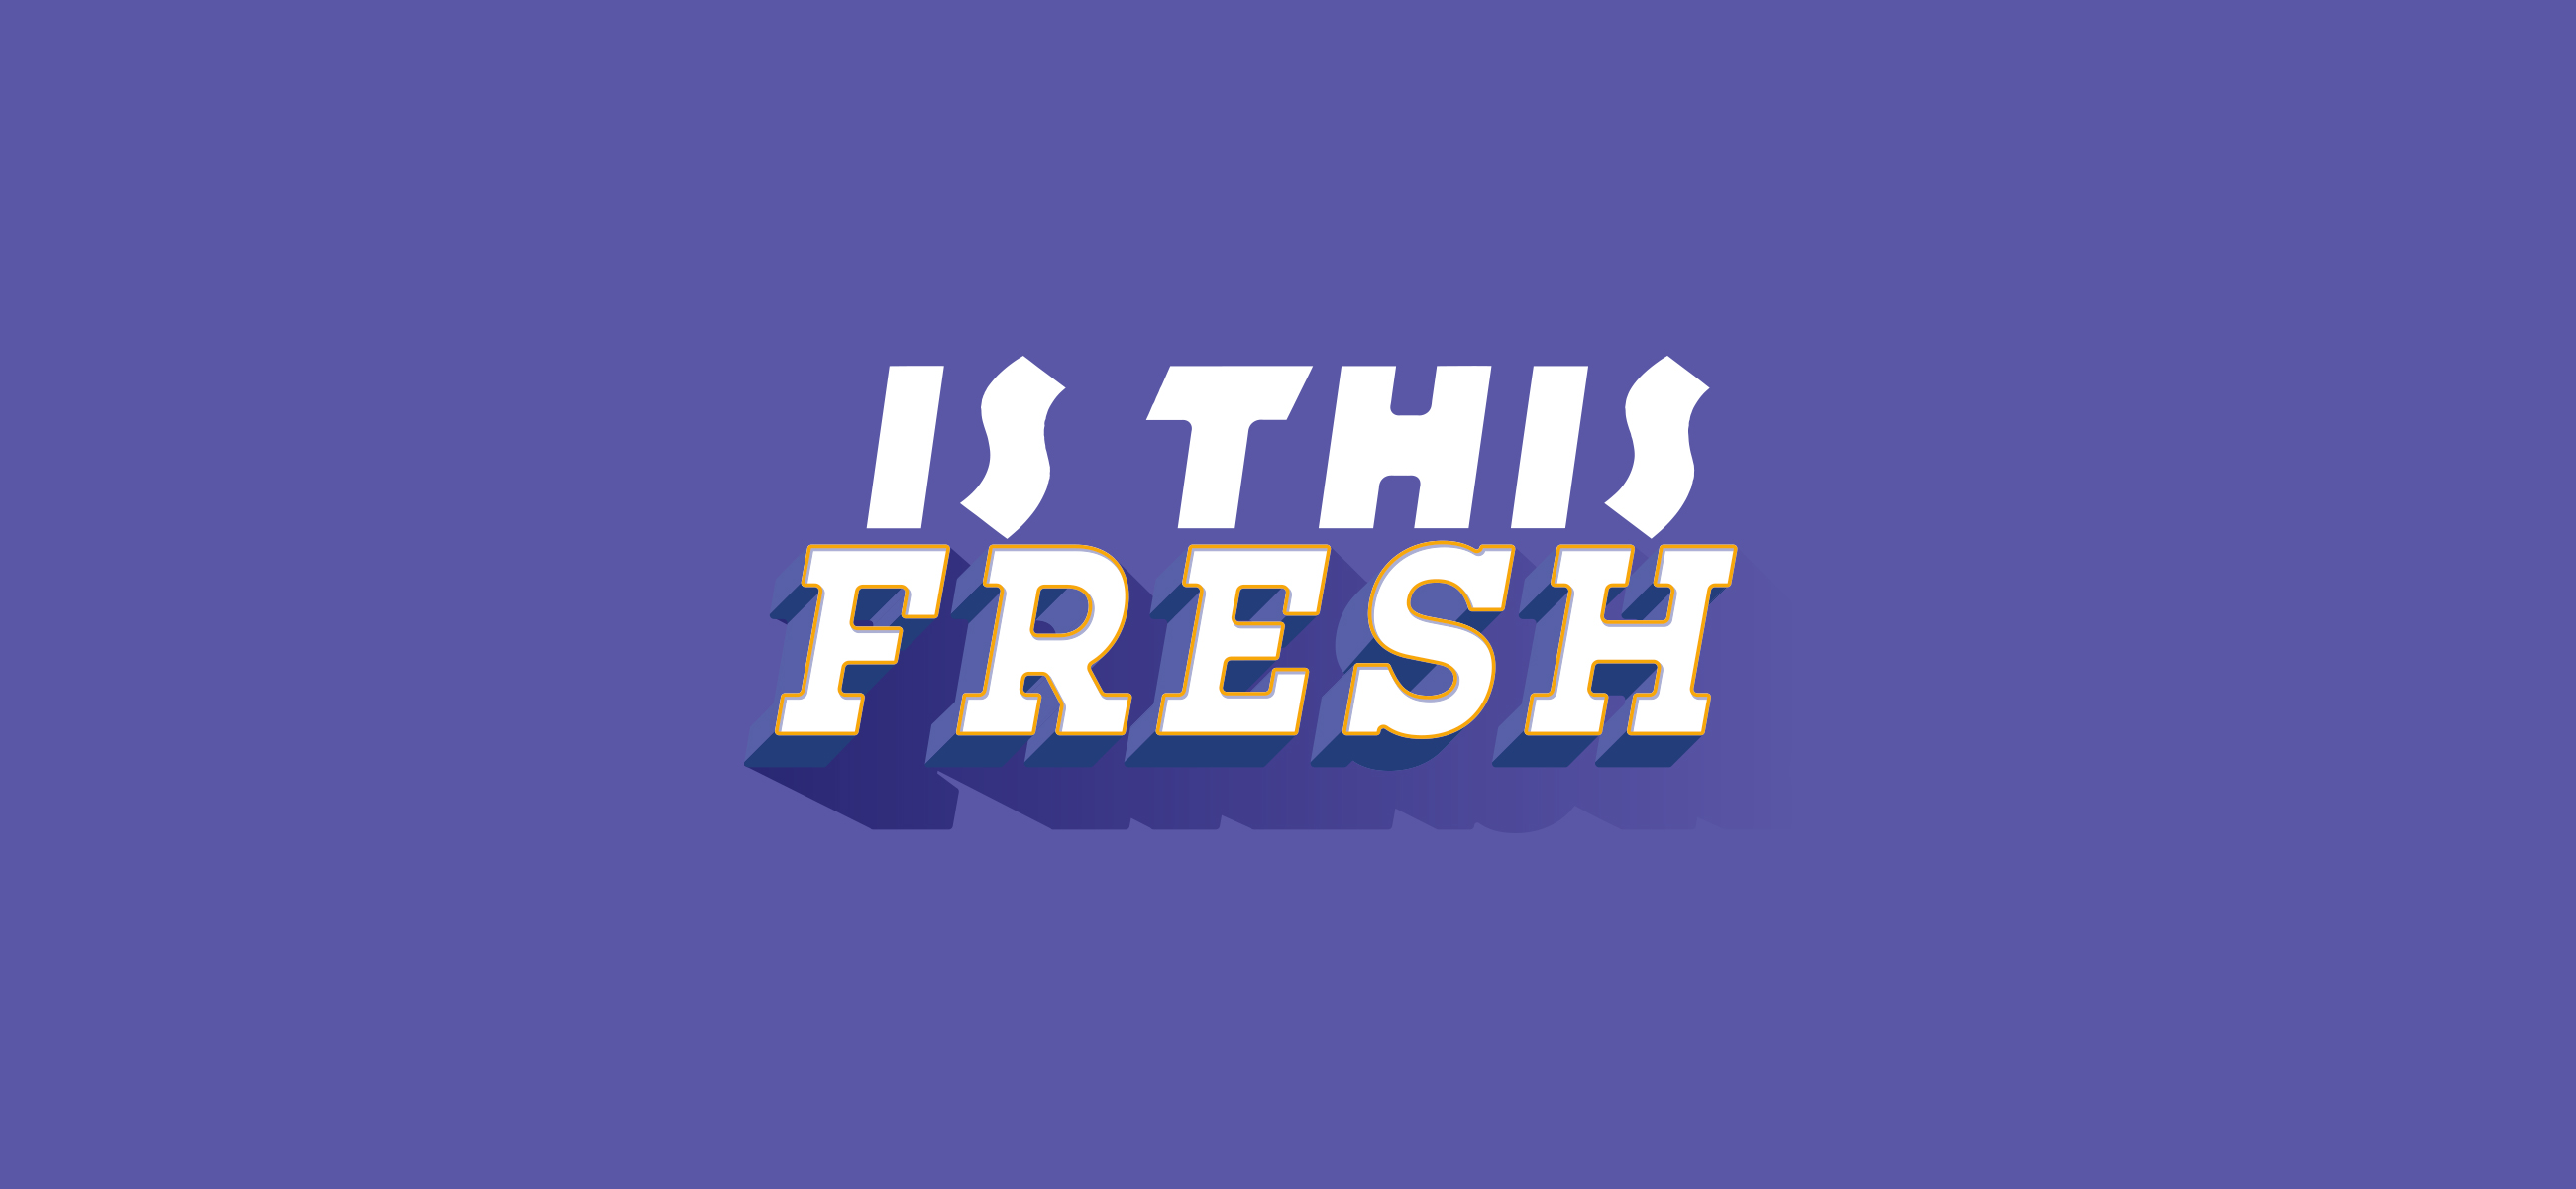 is_this_fresh_parallele_graphique_05